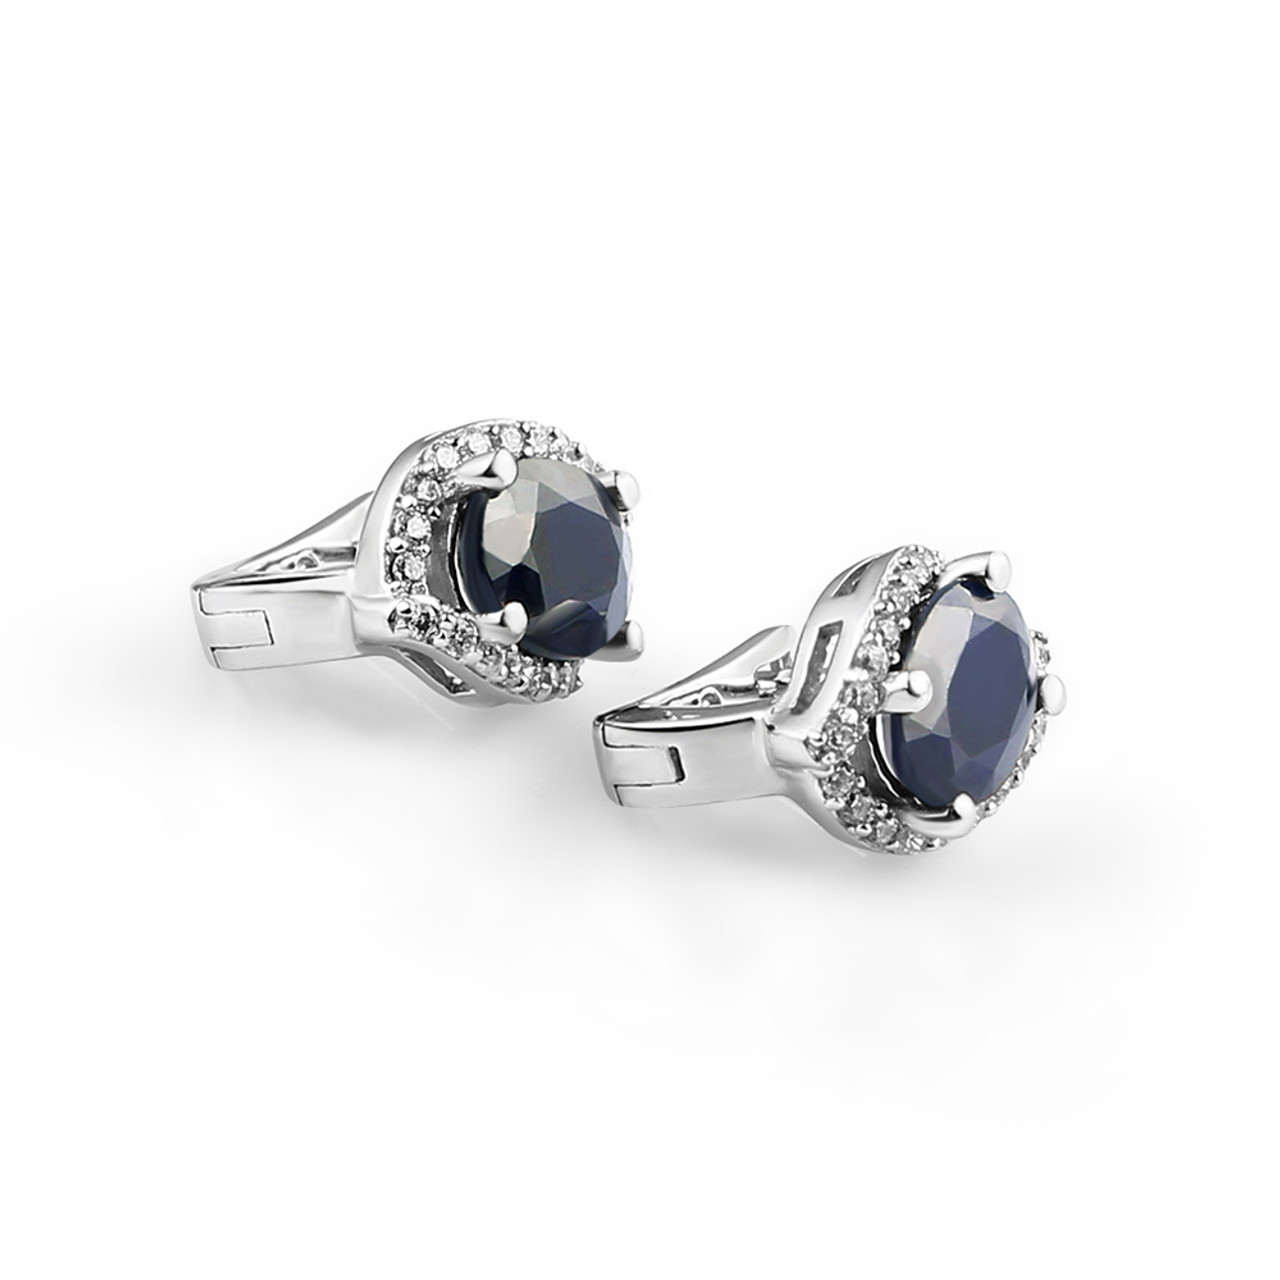 404a55f07 ... Gem's Ballet 3.26C Natural Blue Sapphire Gemstone Vintage Stud Earrings  925 Sterling Silver Fine Jewelry ...